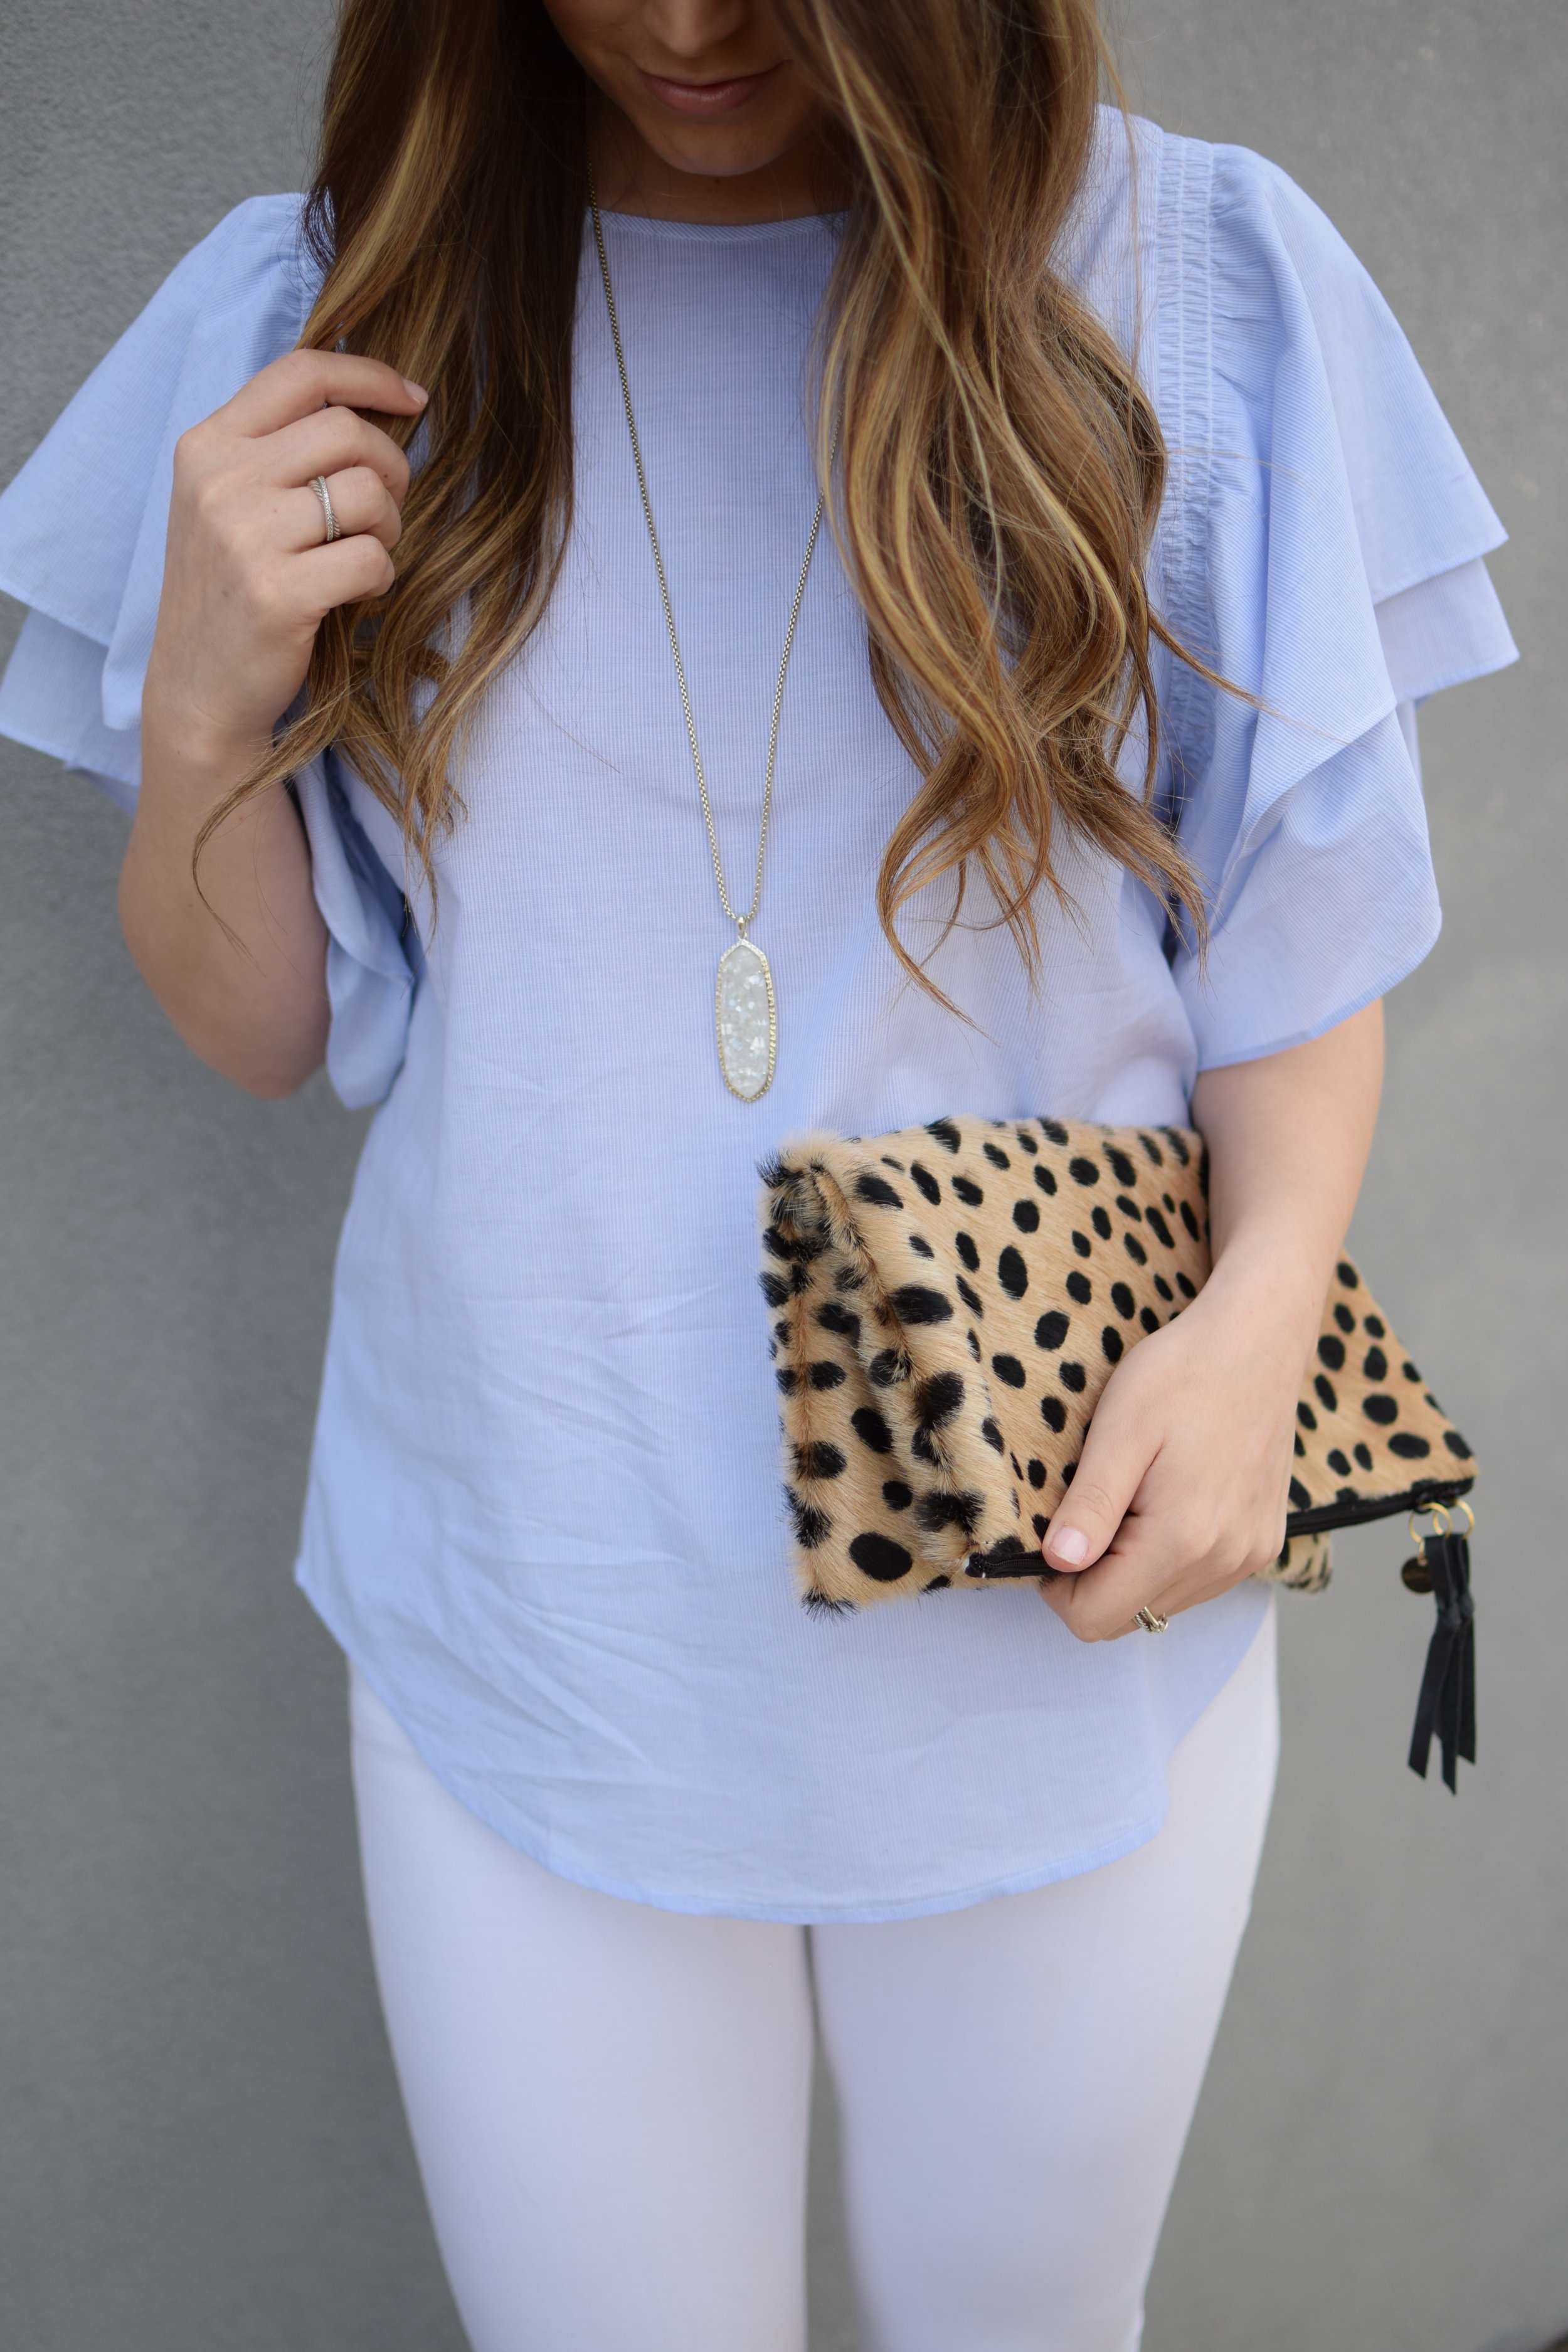 easter outfit idea / ruffle top + cheetah clutch